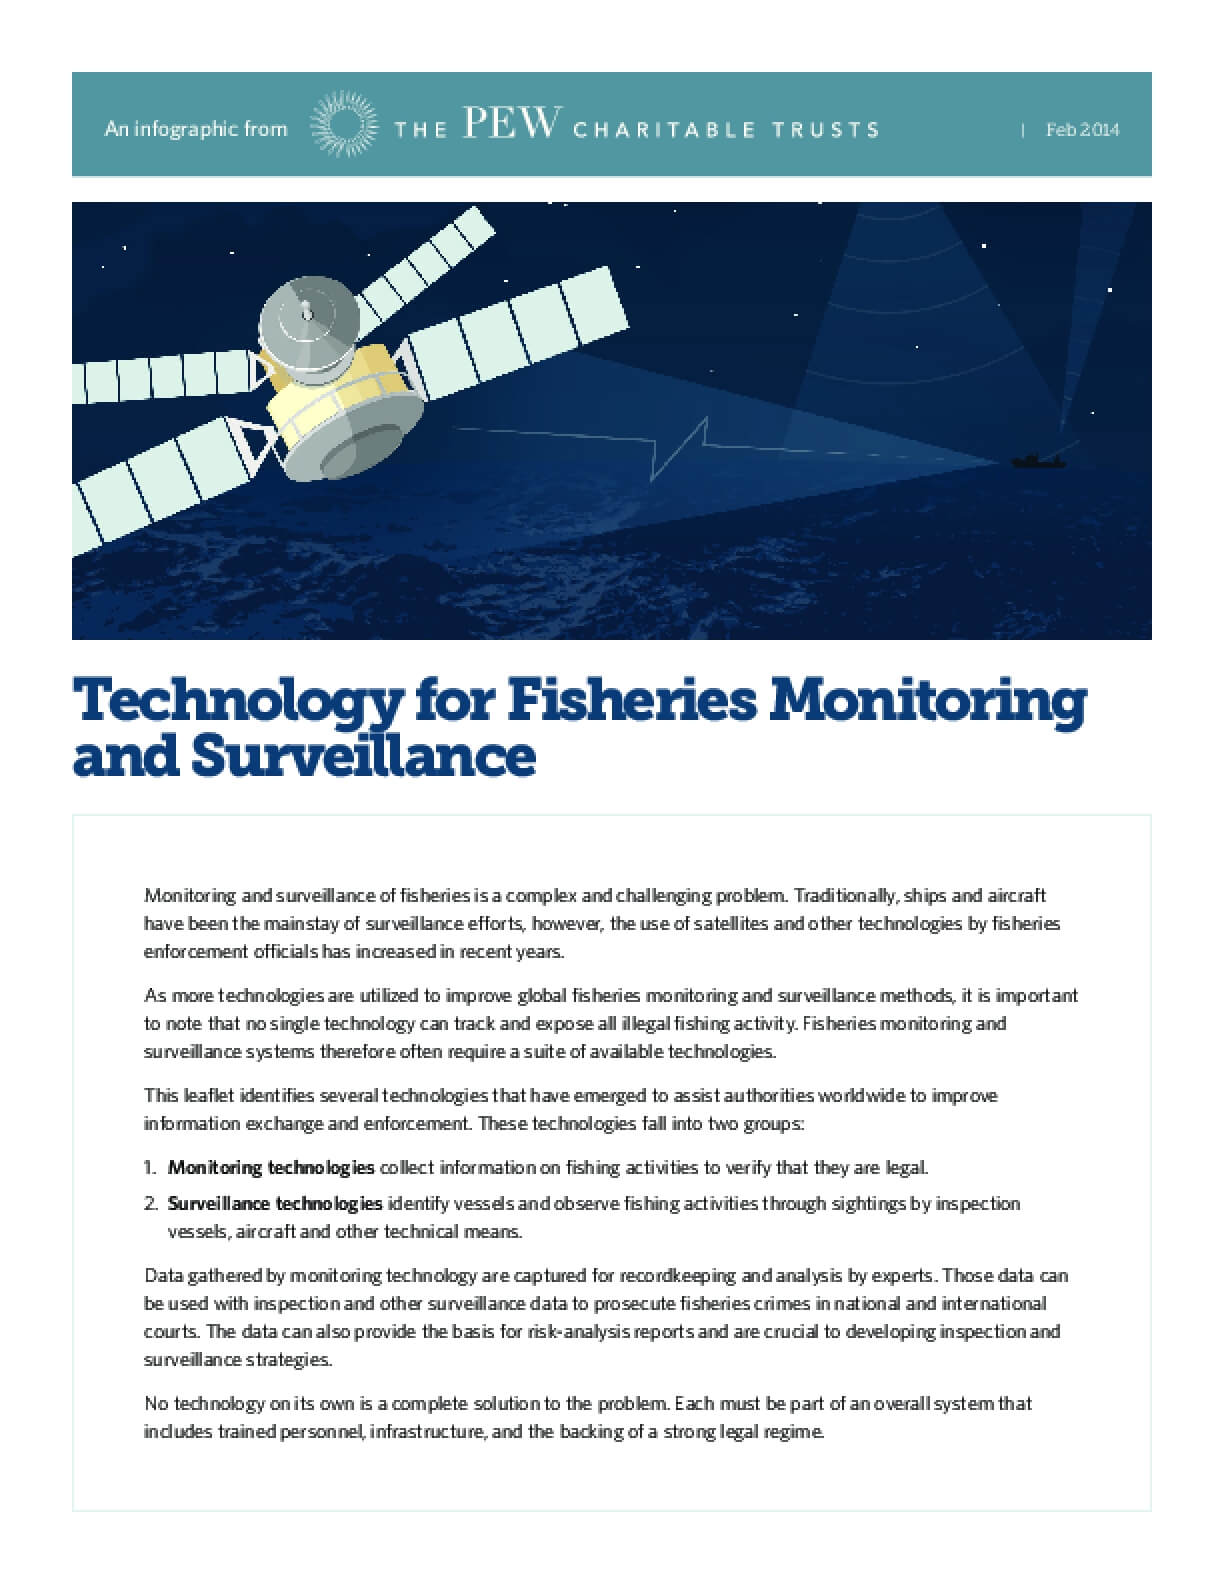 Technology for Fisheries Monitoring and Surveillance